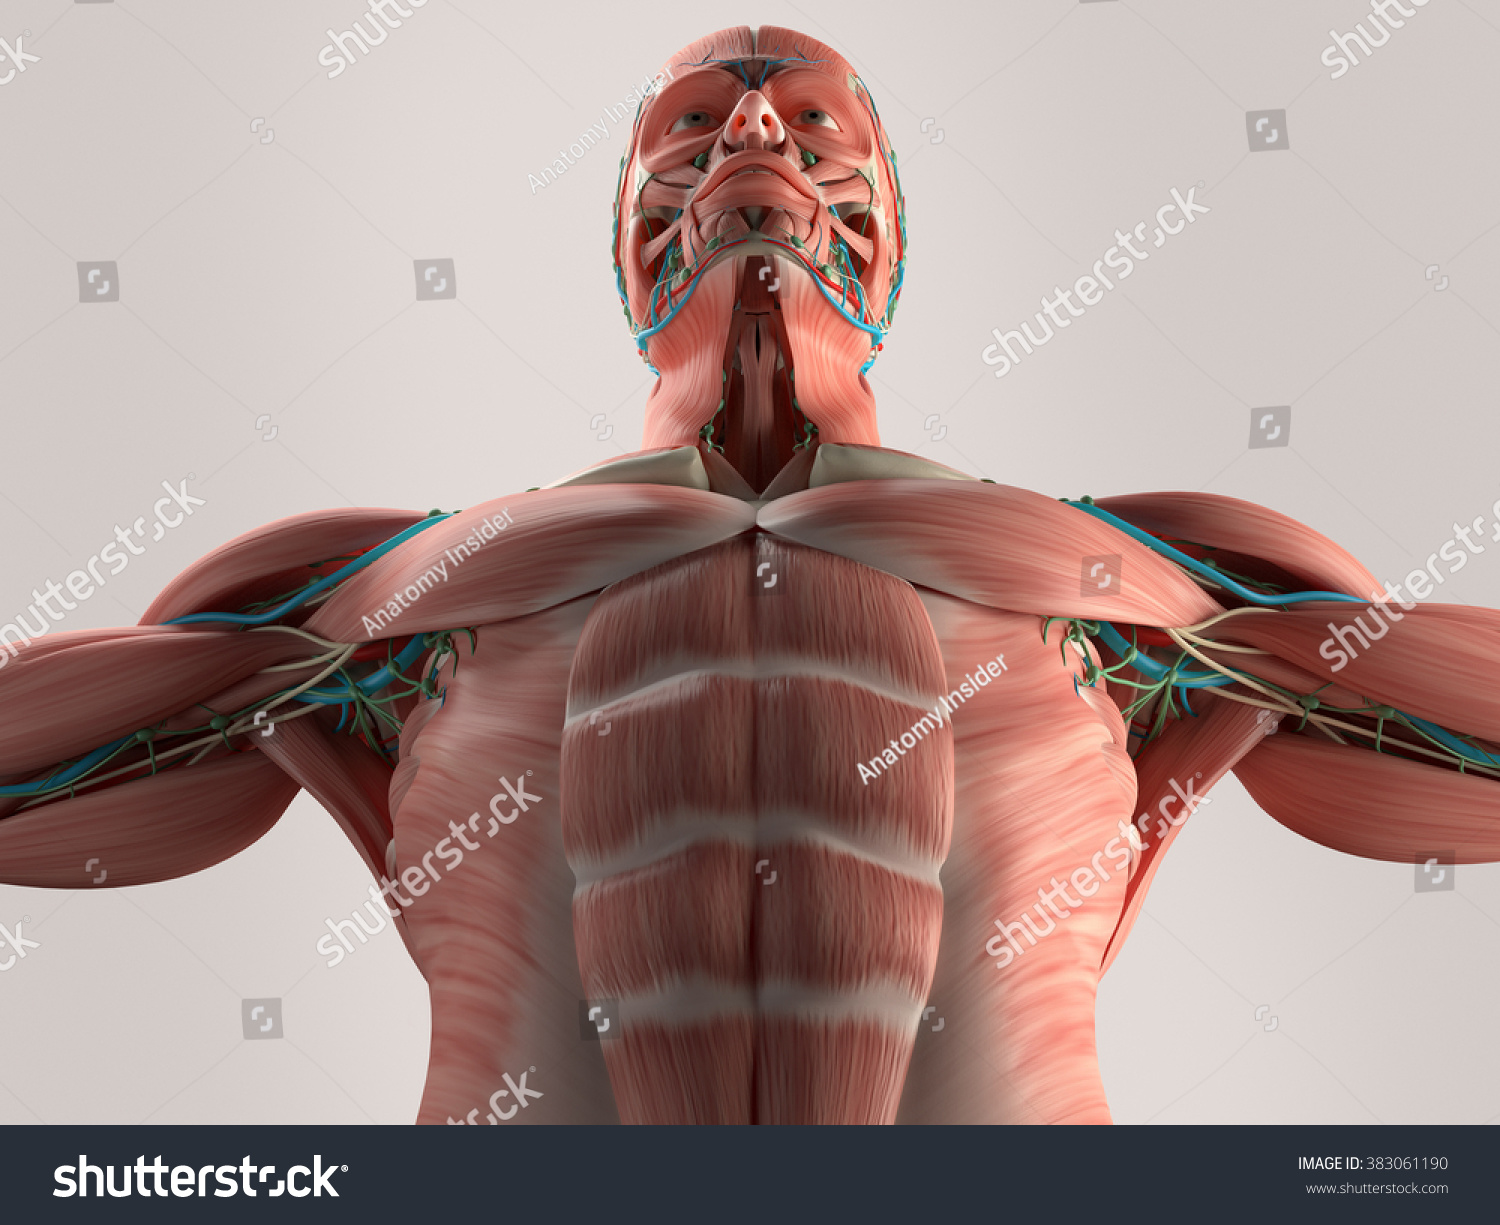 Human Anatomy Chest Low Angle Muscle Stock Illustration 383061190 ...